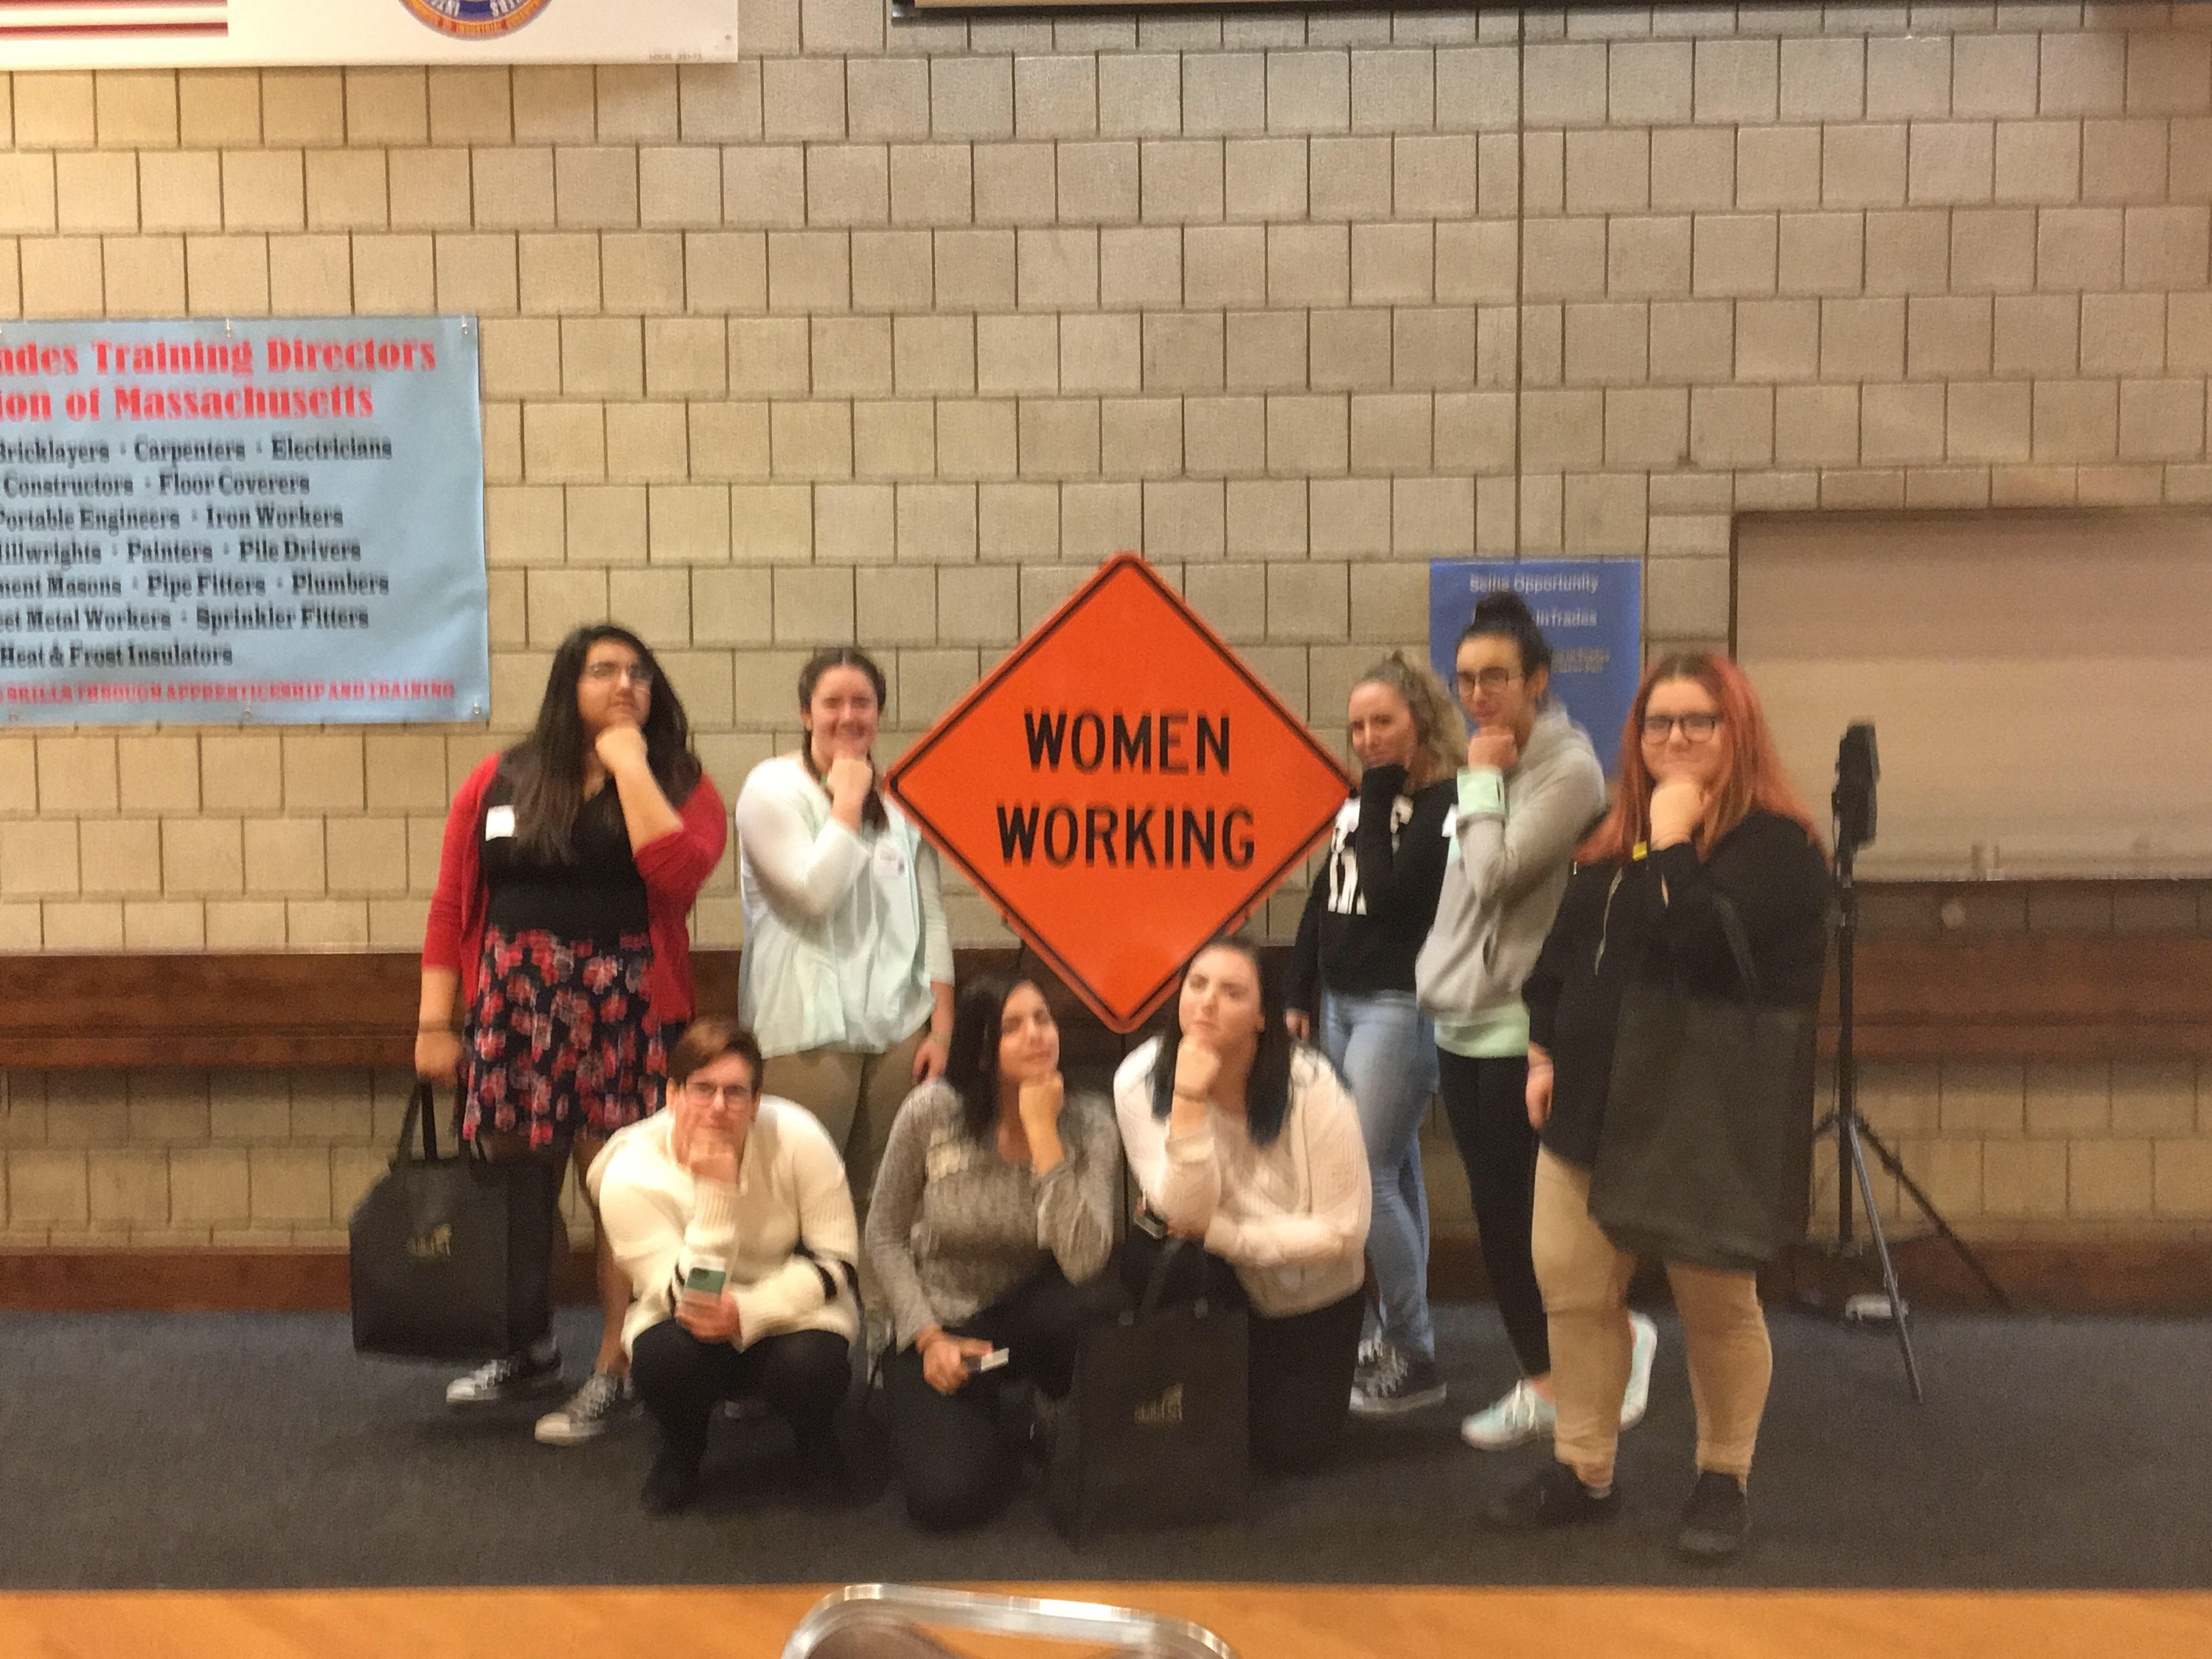 medford vocational technical high school s female students attend recently female students from the medford vocational technical high school mvths attend a first in the state girls in trades conference career fair